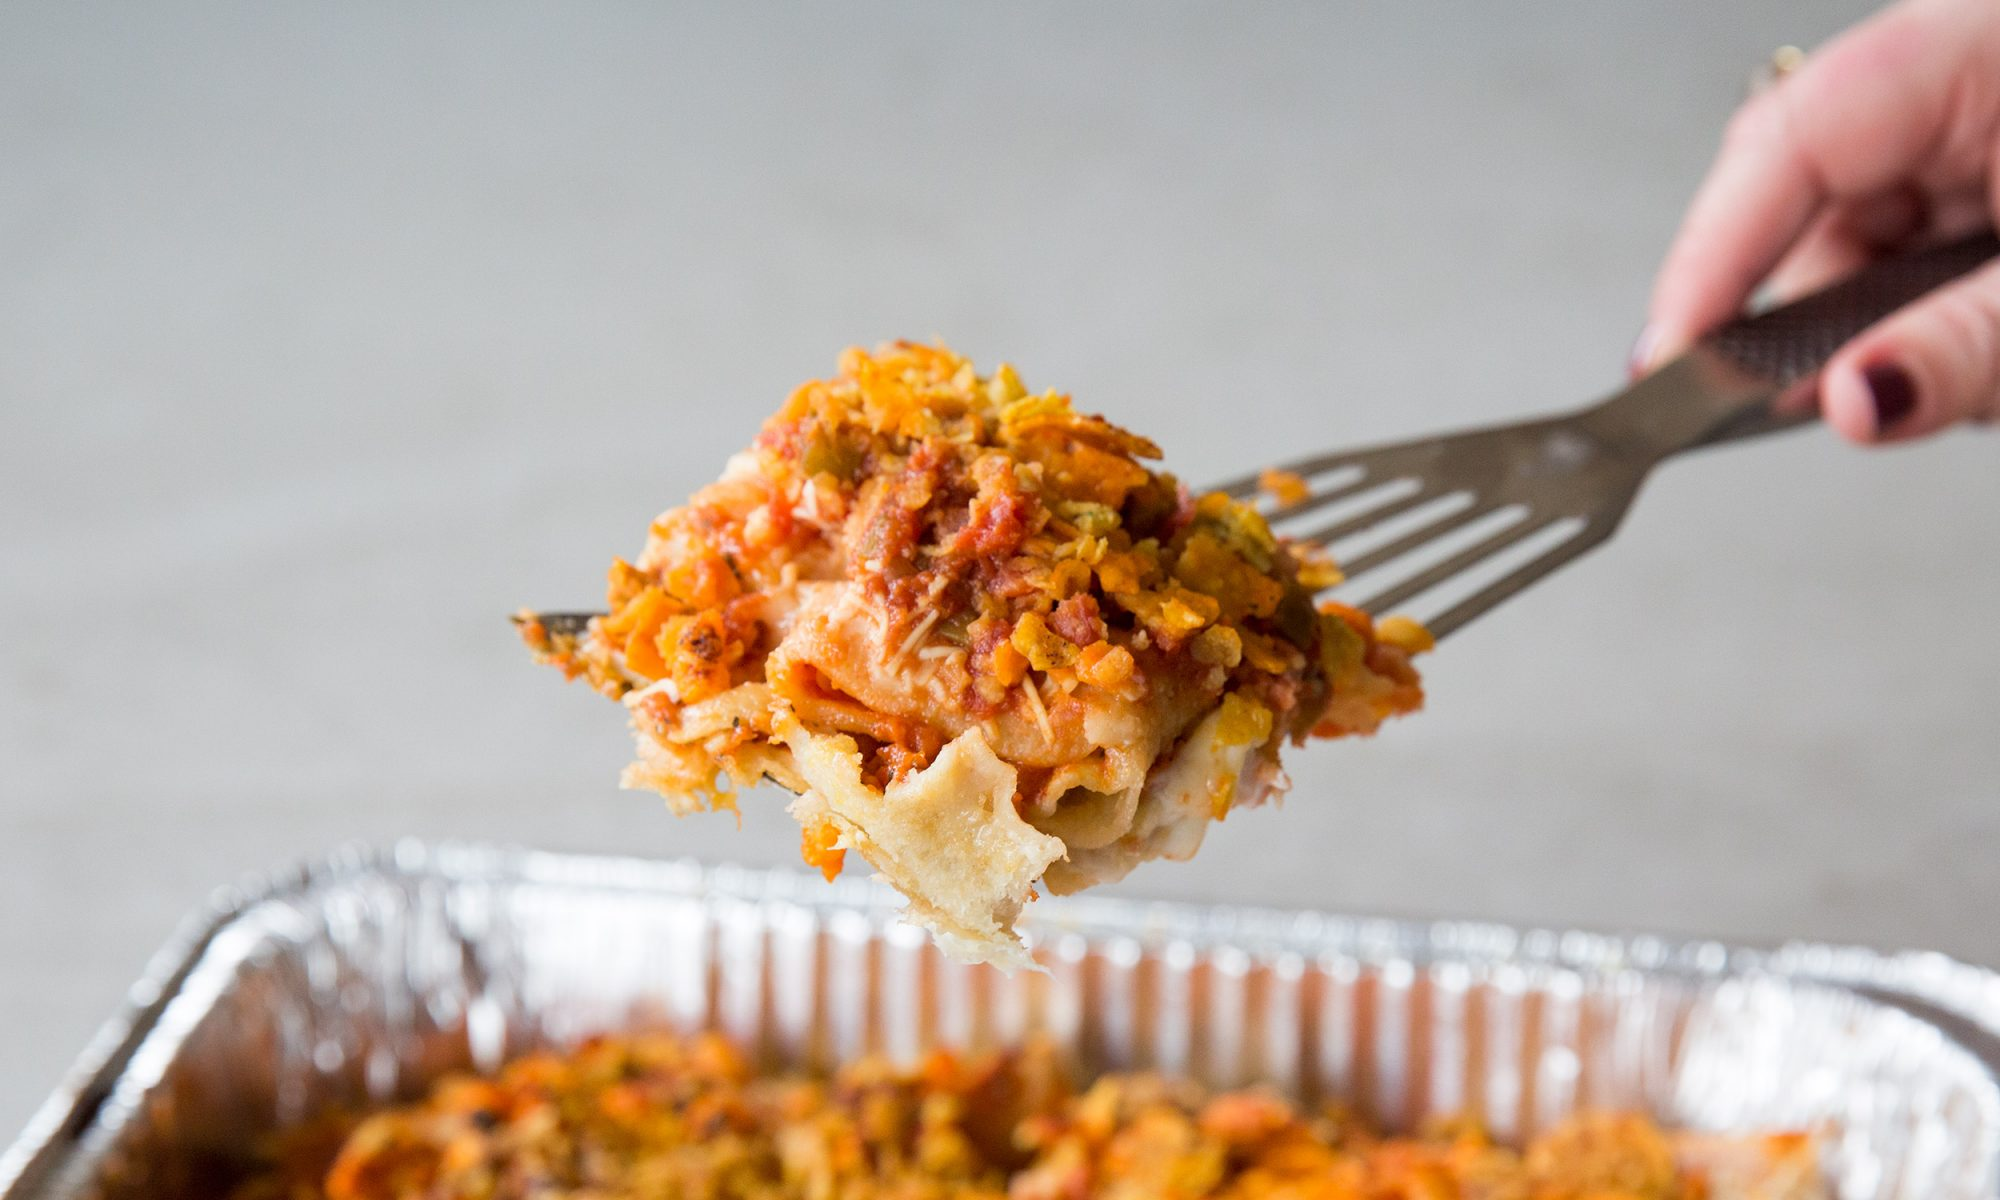 EC: Pizza Roll Lasagna Dirtbag Casserole for the Morning After